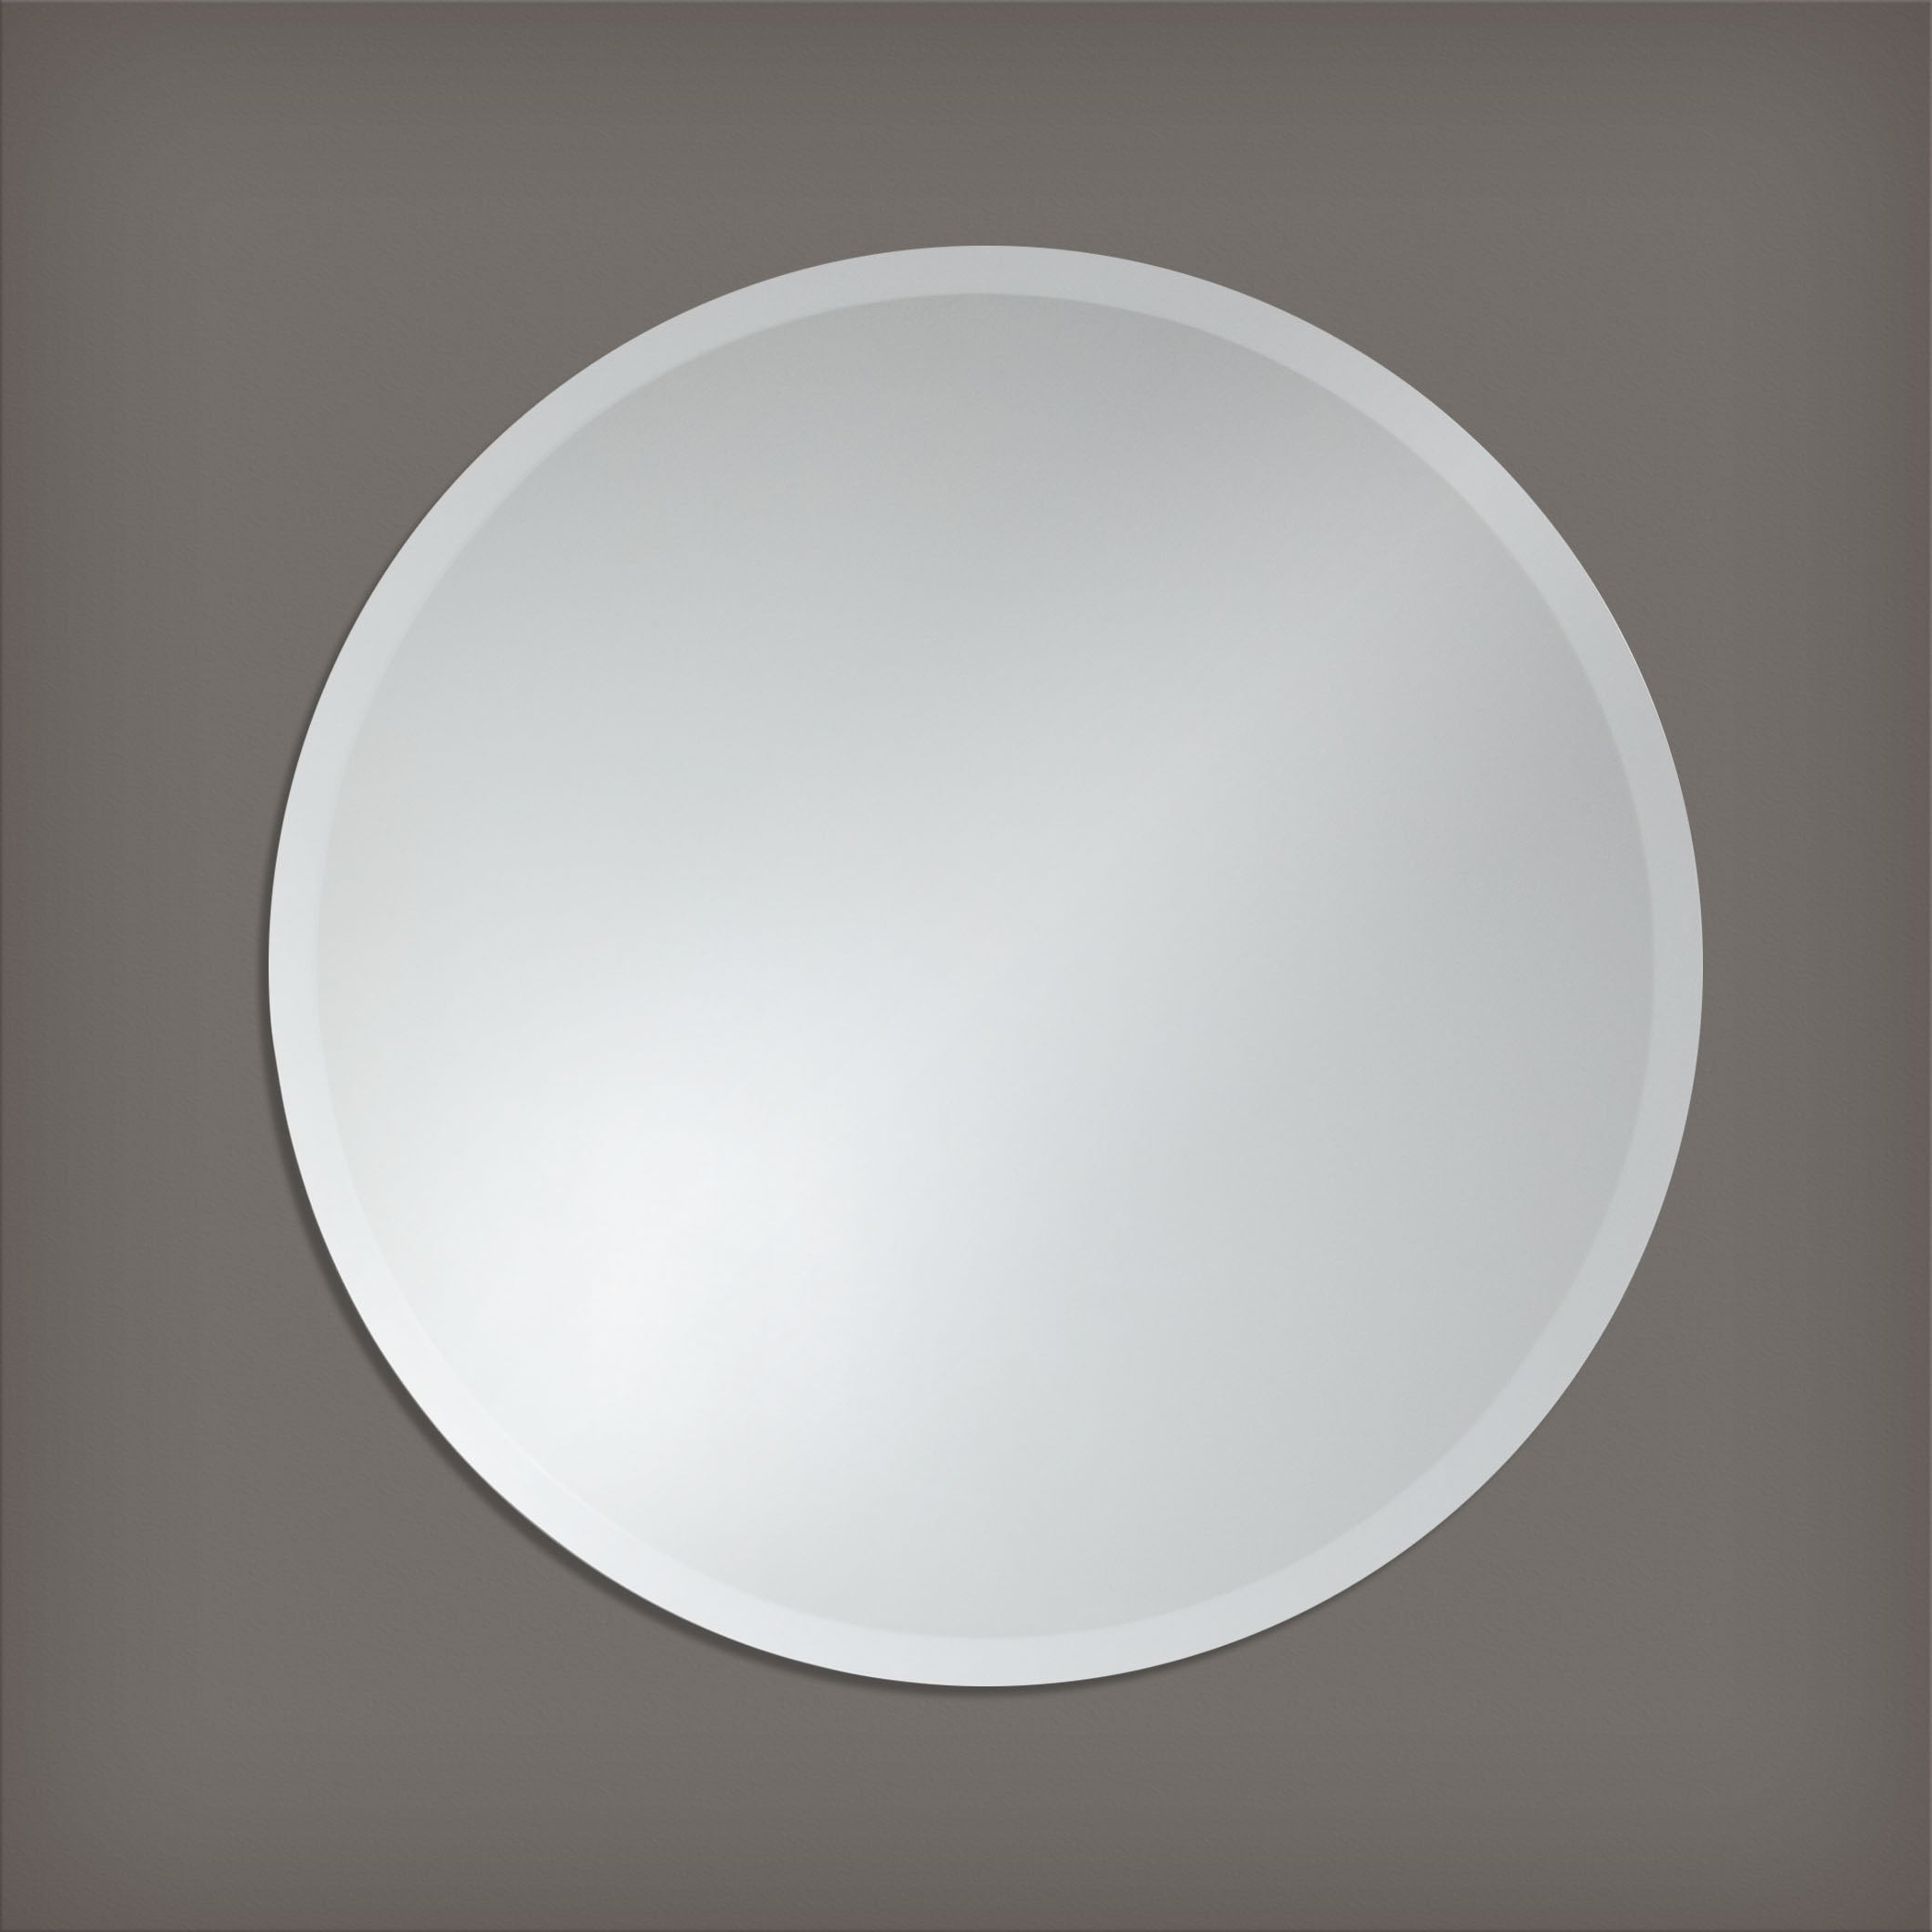 Trendy Frameless Round Wall Mirrorthe Better Bevel – Silver Intended For Frameless Round Wall Mirrors (View 20 of 20)